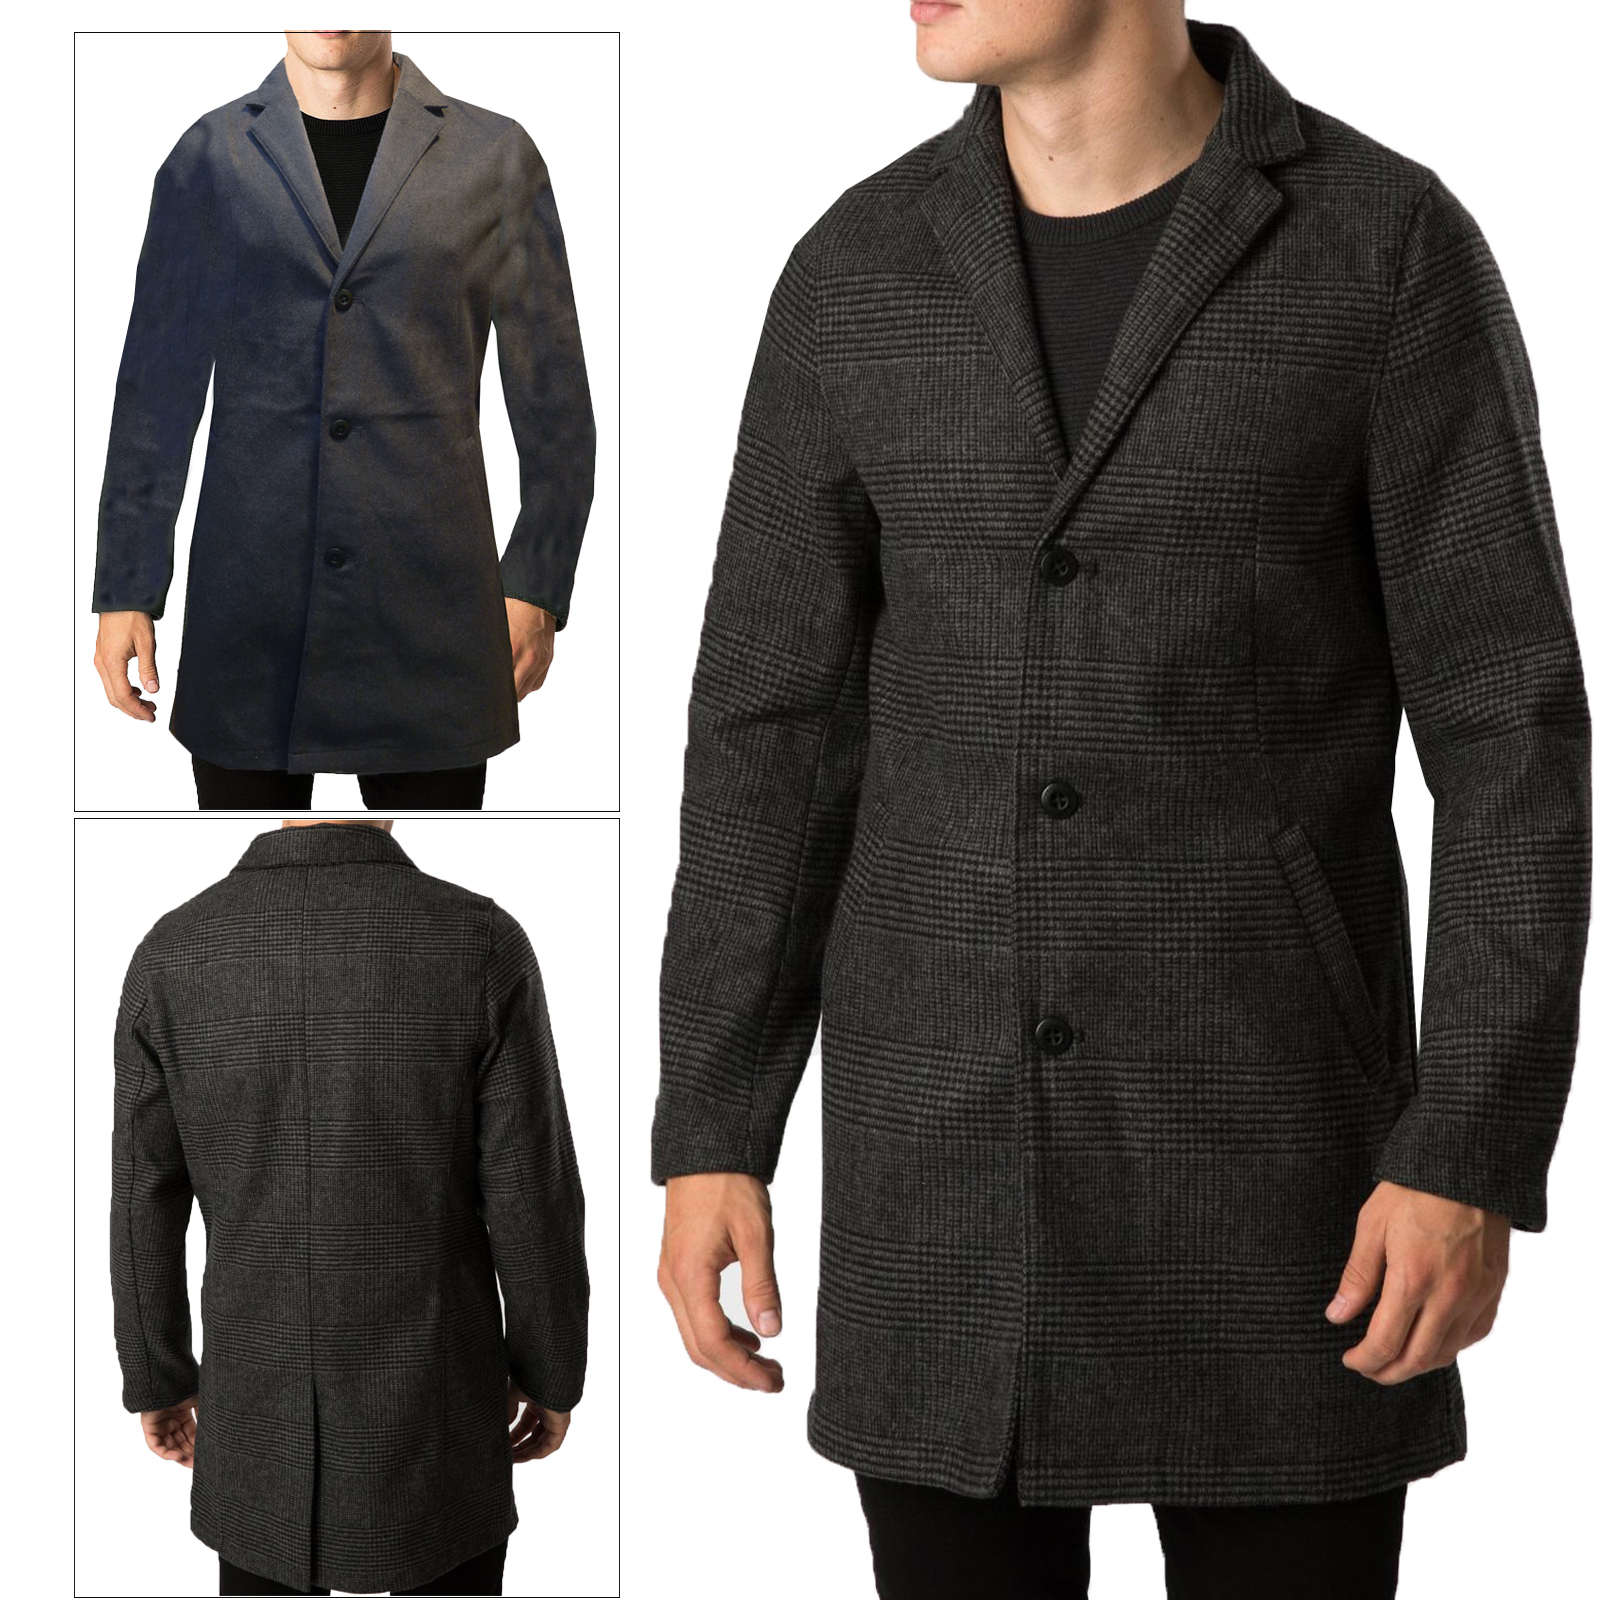 Mens Threadbare Wool Mix Formal Smart Collared Button Winter Trench Coat Jacket